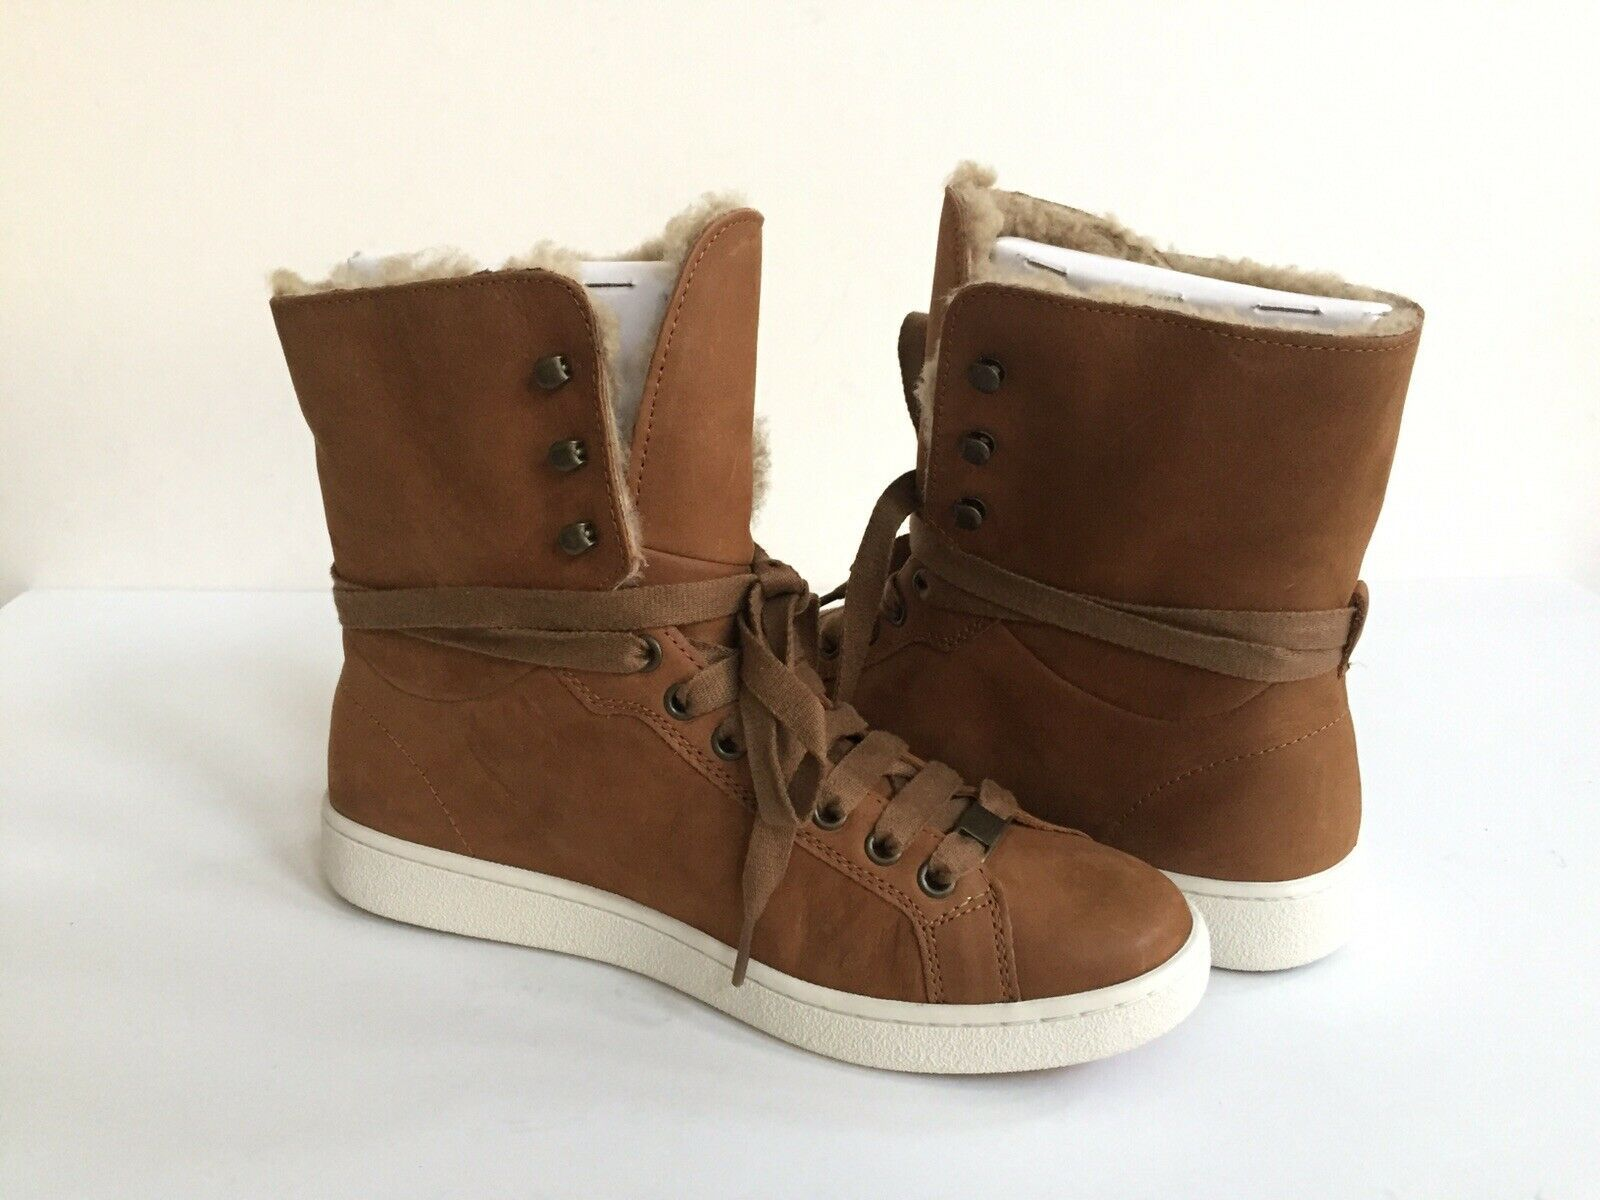 UGG STARLYN CHESTNUT ANKLE SNEAKERS LEATHER SHOE US 9.5 / EU 40.5 / UK 7.5 NIB image 2